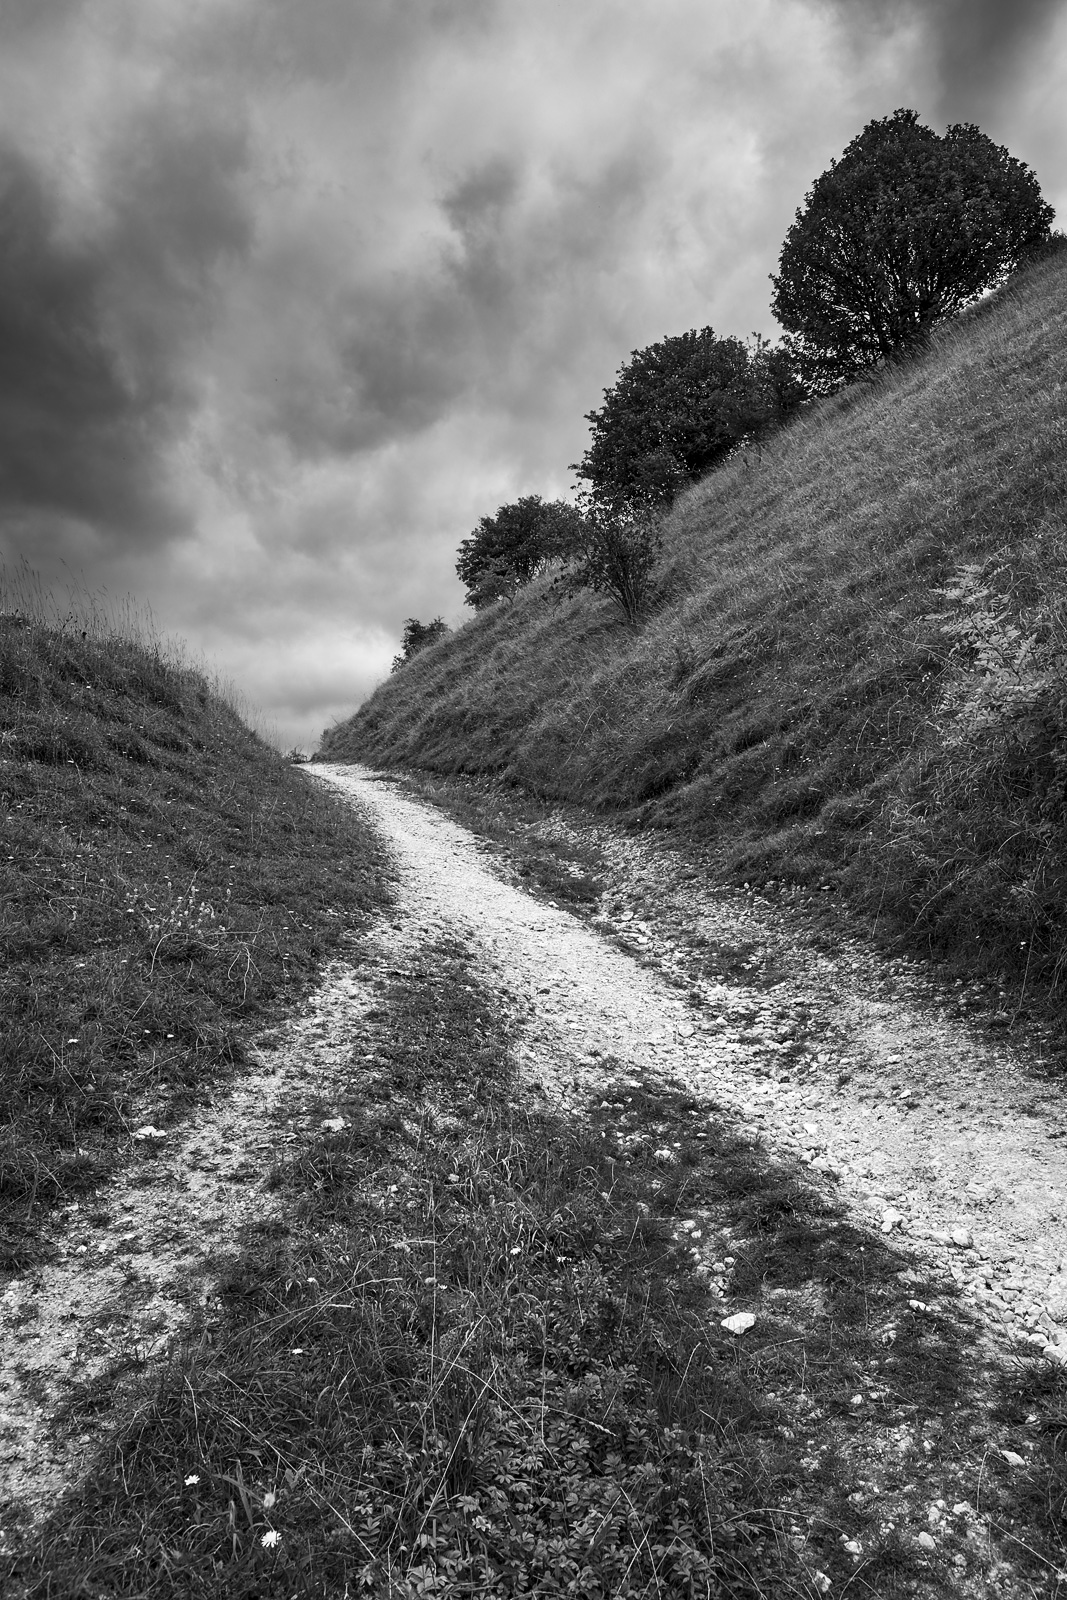 Chalk paths converging up hill with cloudy sky and row or three shrubs on horizon , strong leading lines and composition Truleigh Hill West Sussex UK ©P. maton 2018 eyeteeth.net